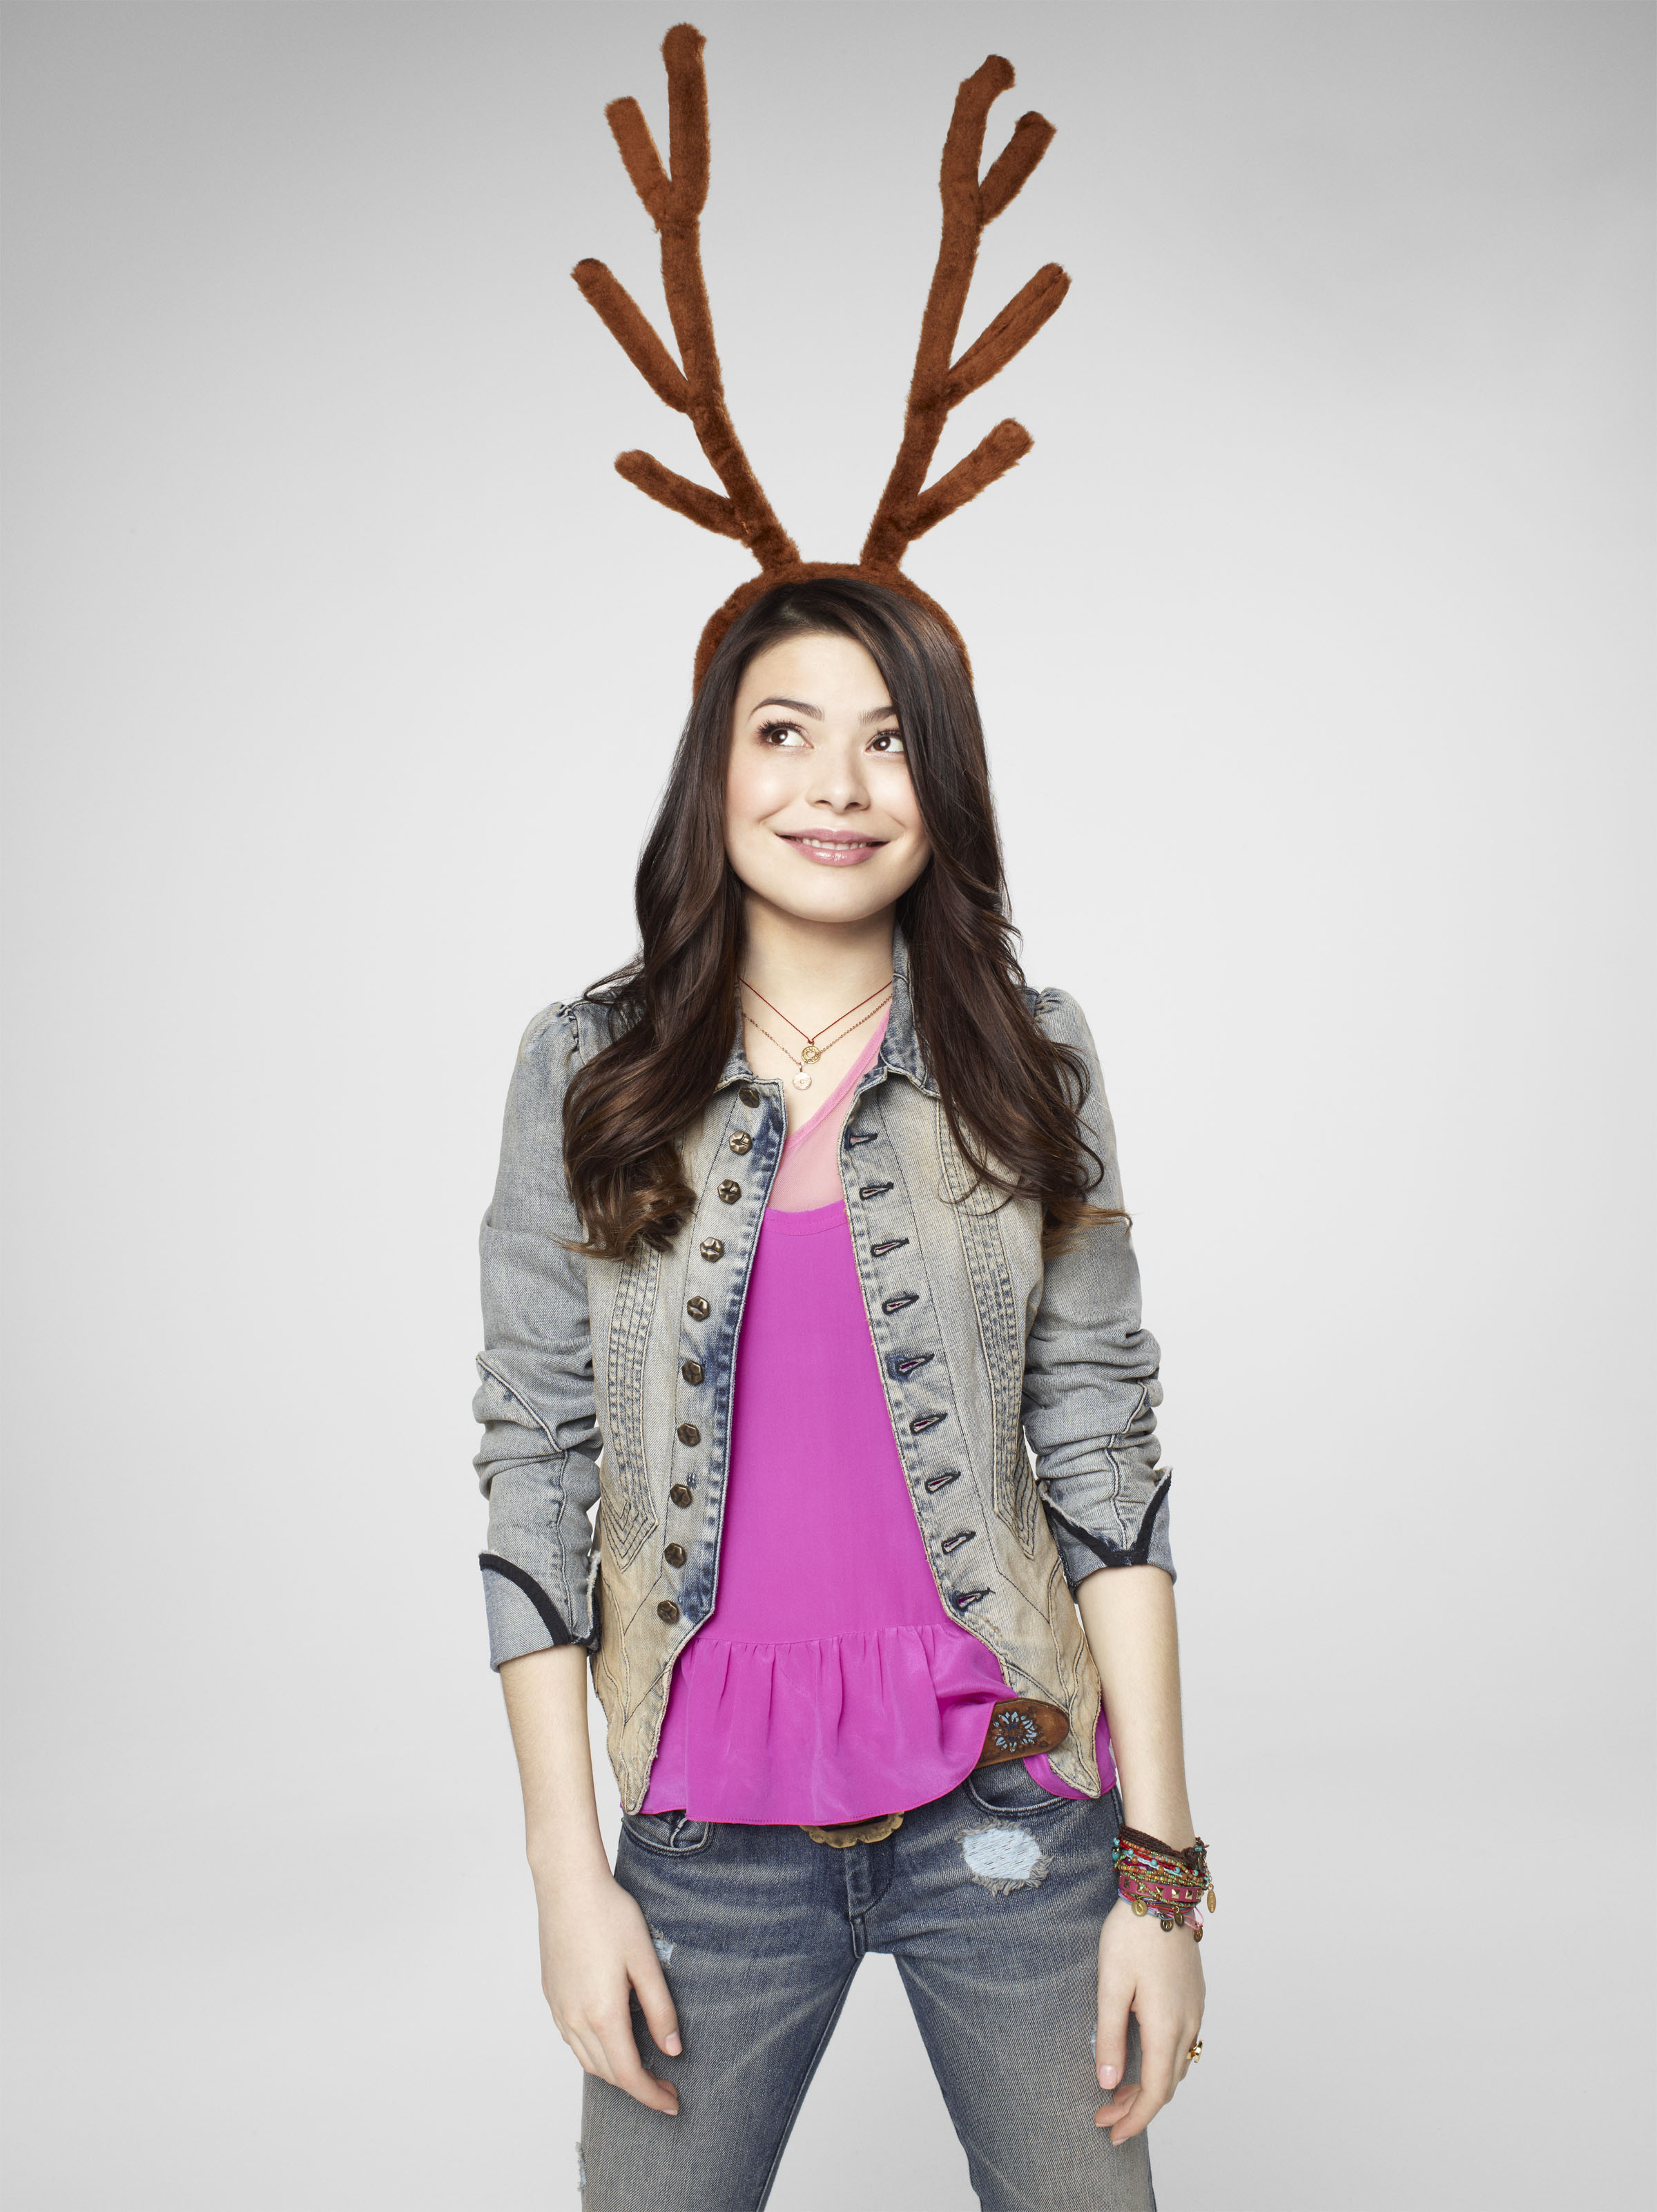 Miranda Cosgrove images iCarly \'Happy Holidays\' Promos - 2011 HD ...